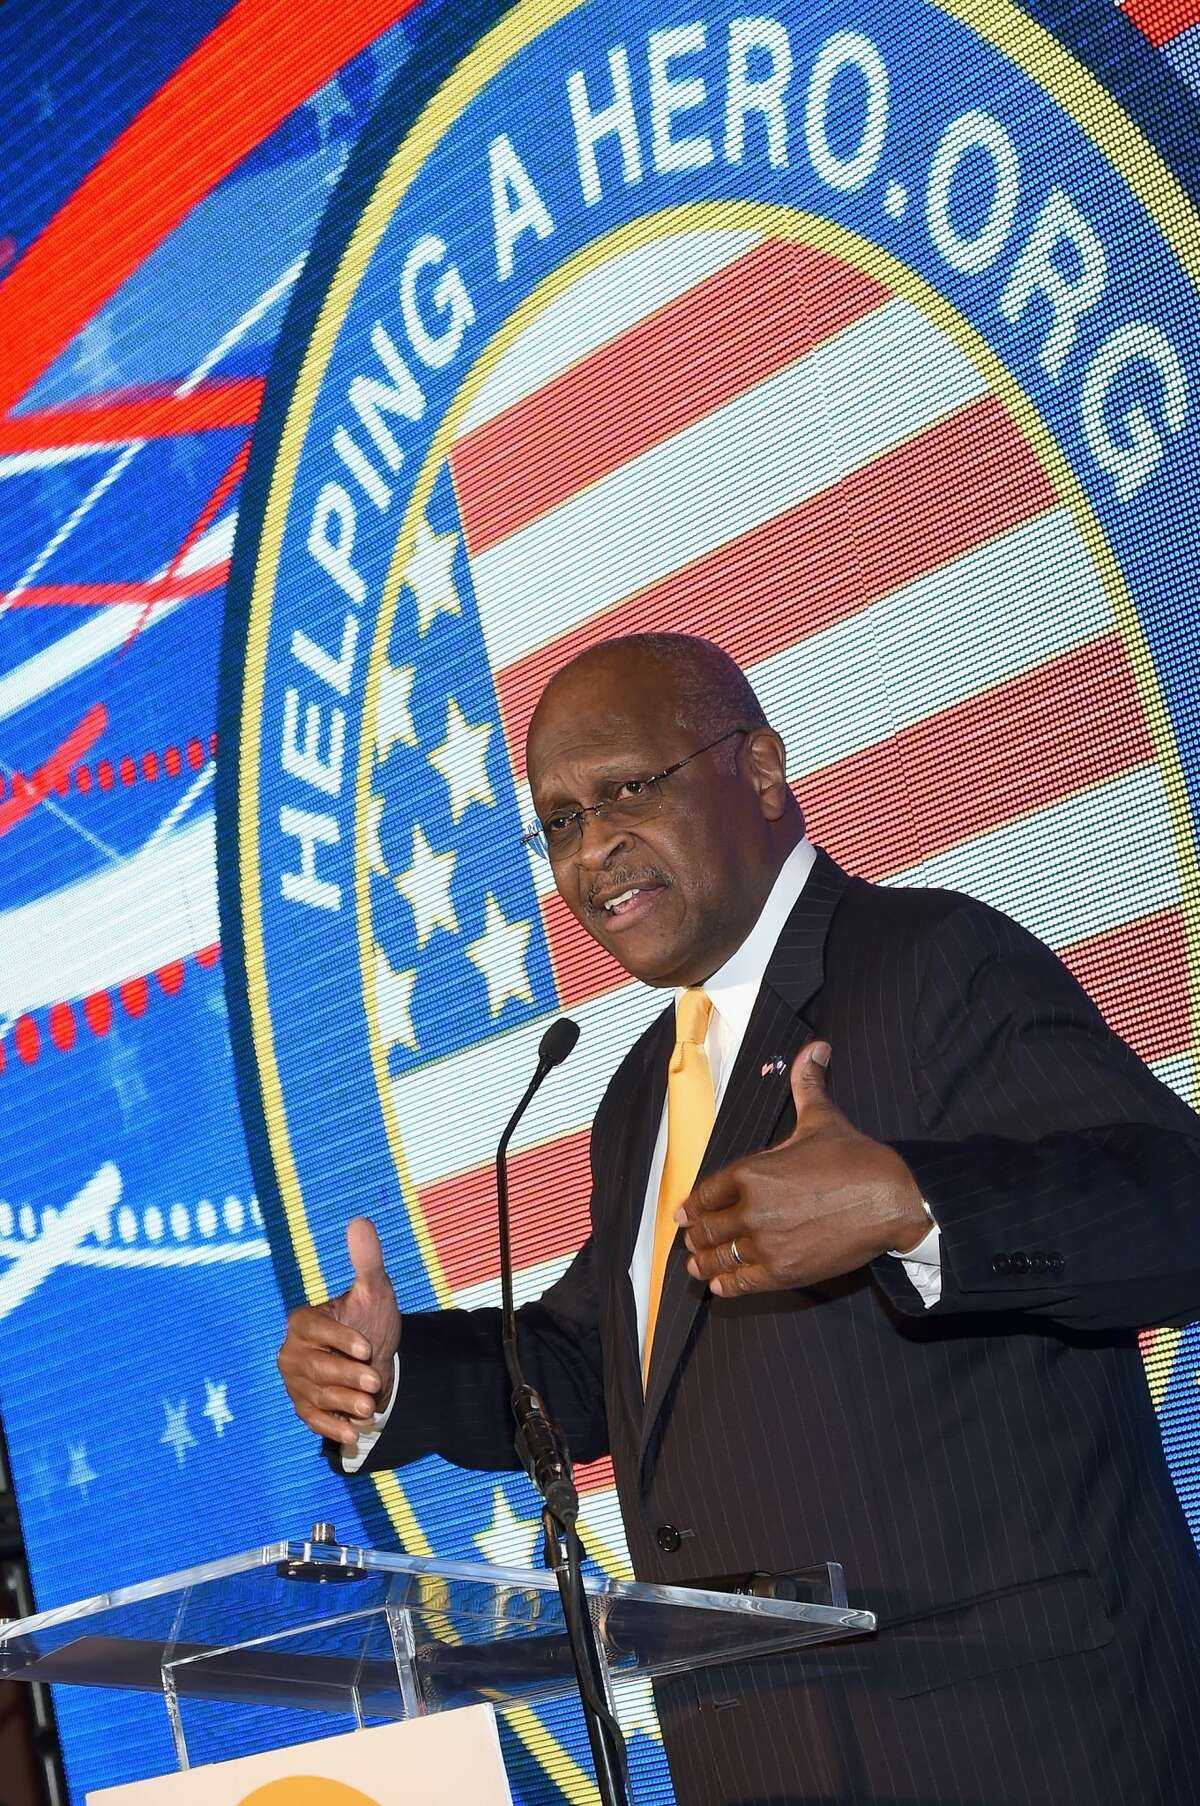 HOUSTON, TX - NOVEMBER 22: Patriot Award Recipient/Former Presidental canidate Herman Cain attends the 2015 Helping A Hero Gala on November 22, 2015 in Houston, Texas. (Photo by Rick Diamond/Getty Images for Helping A Hero)